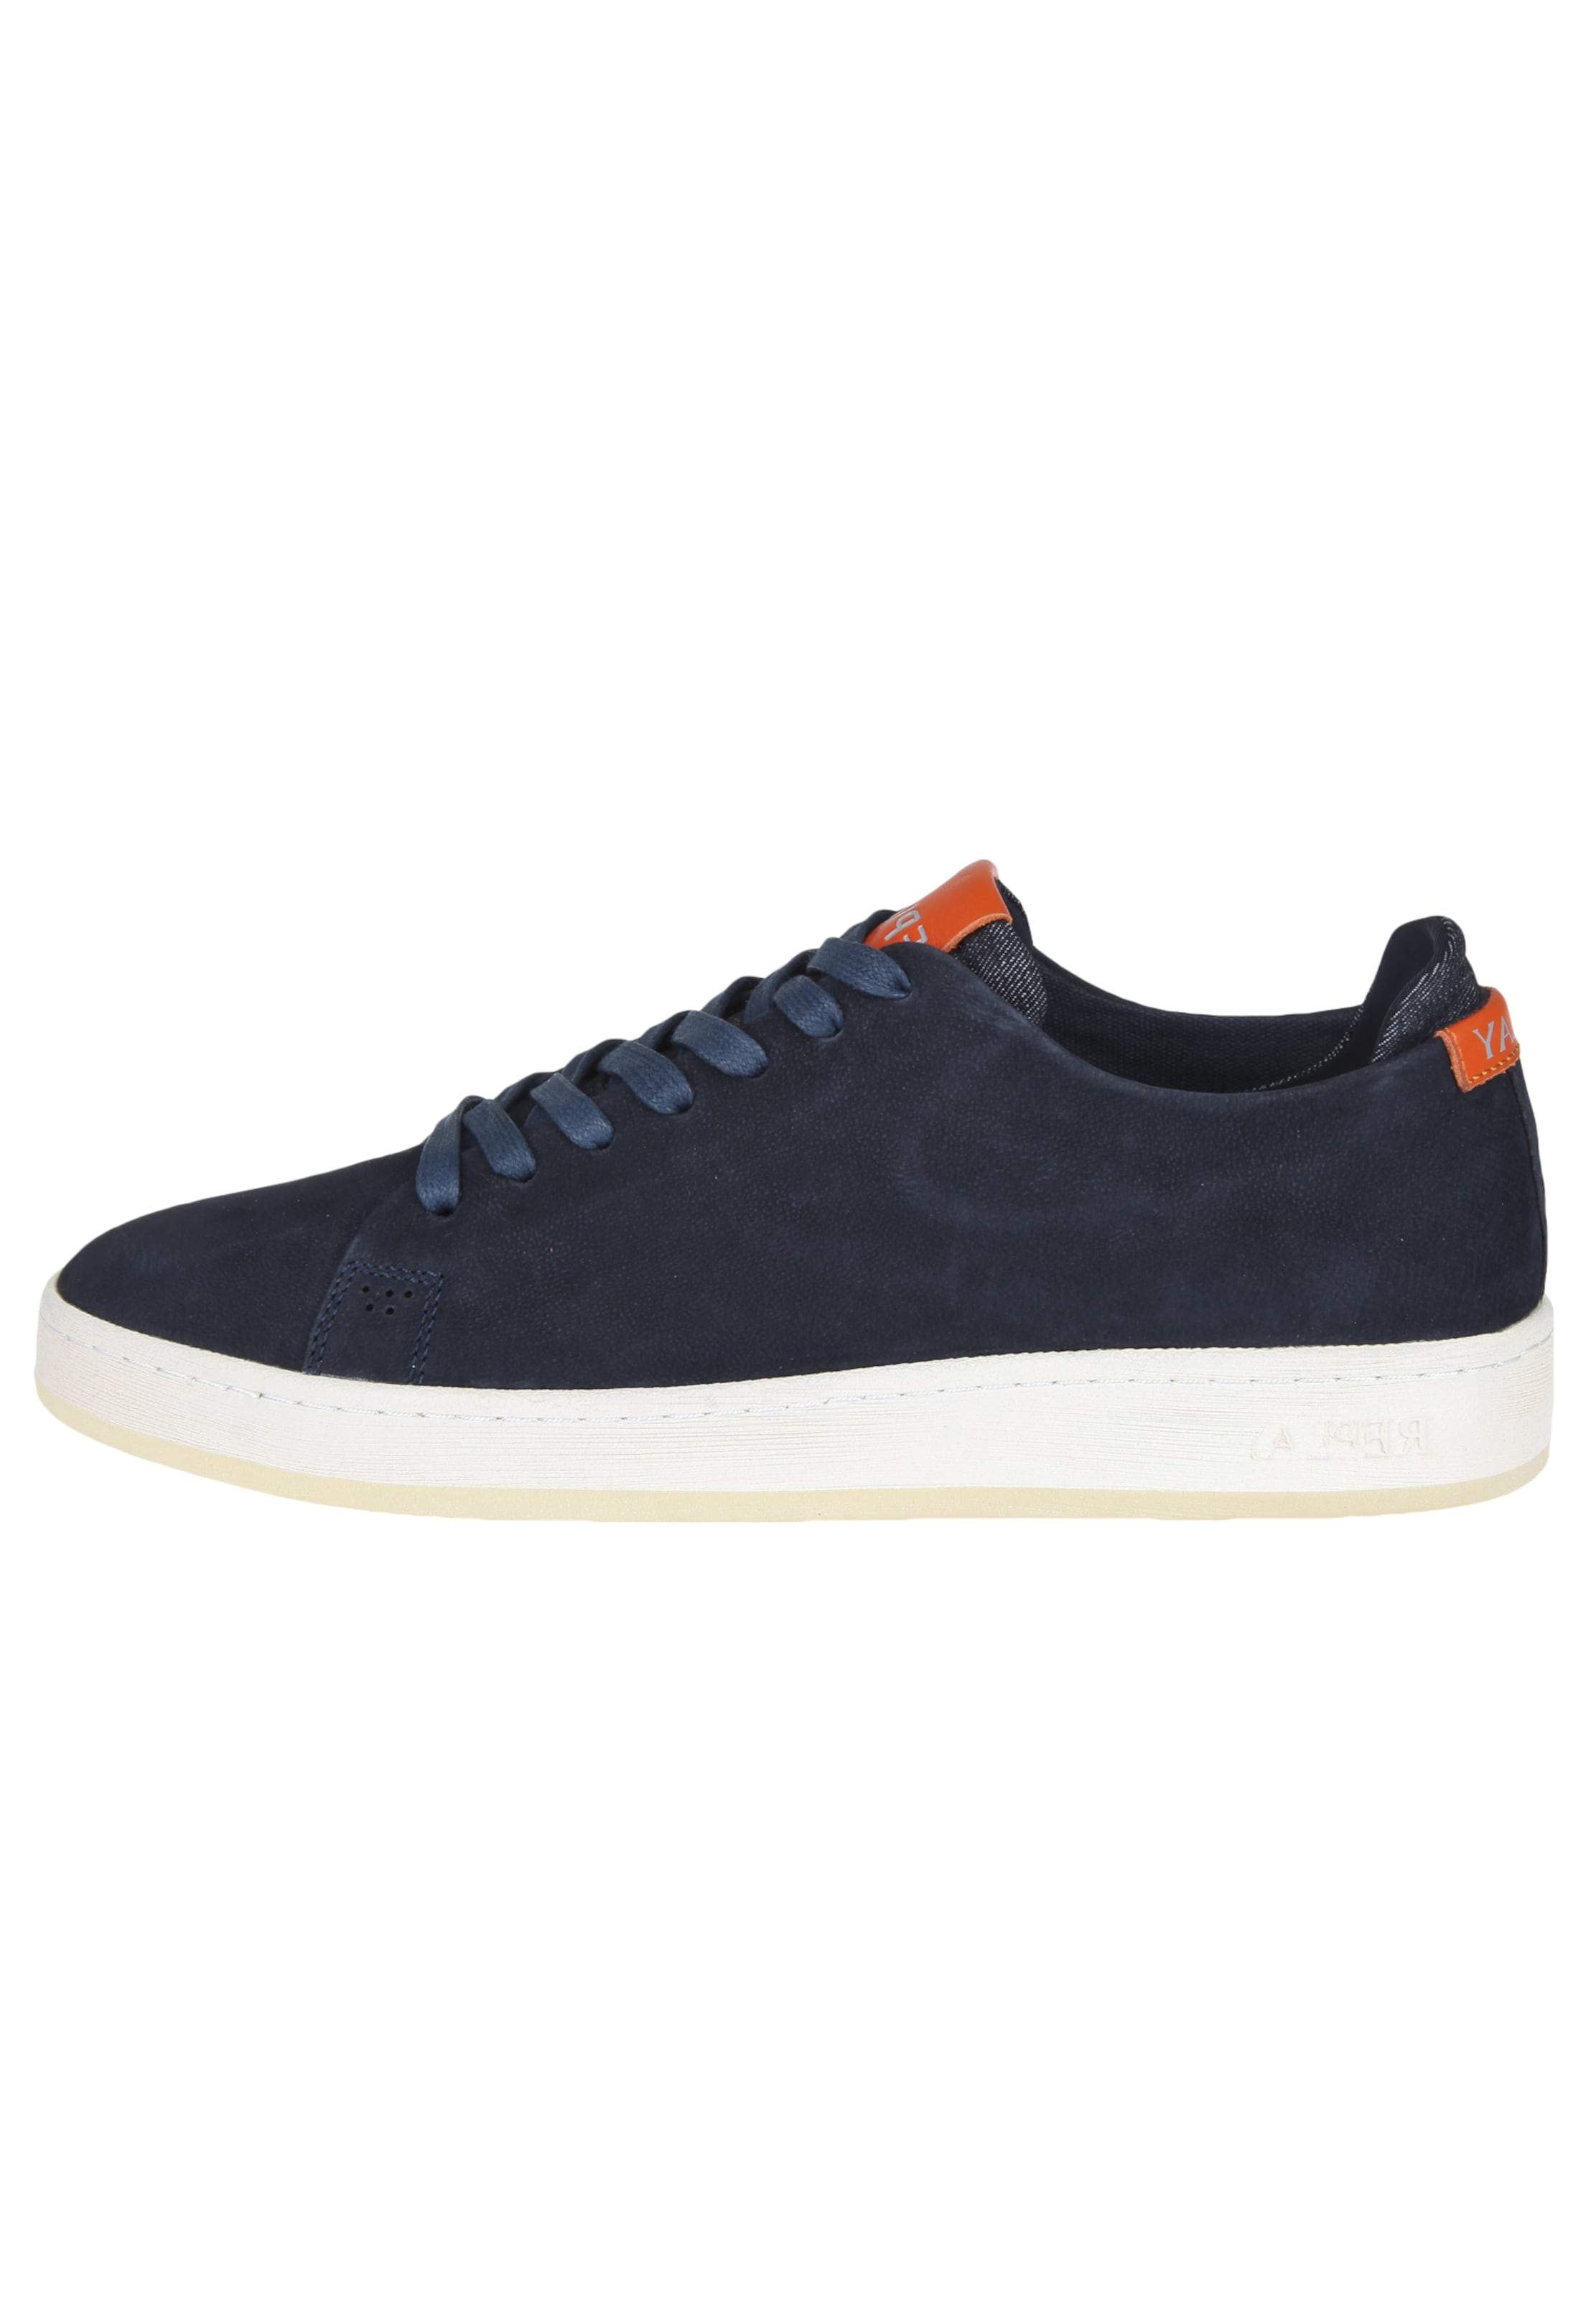 BlauNavy 'wharm' Replay In Sneaker Neonorange SzVqUMp